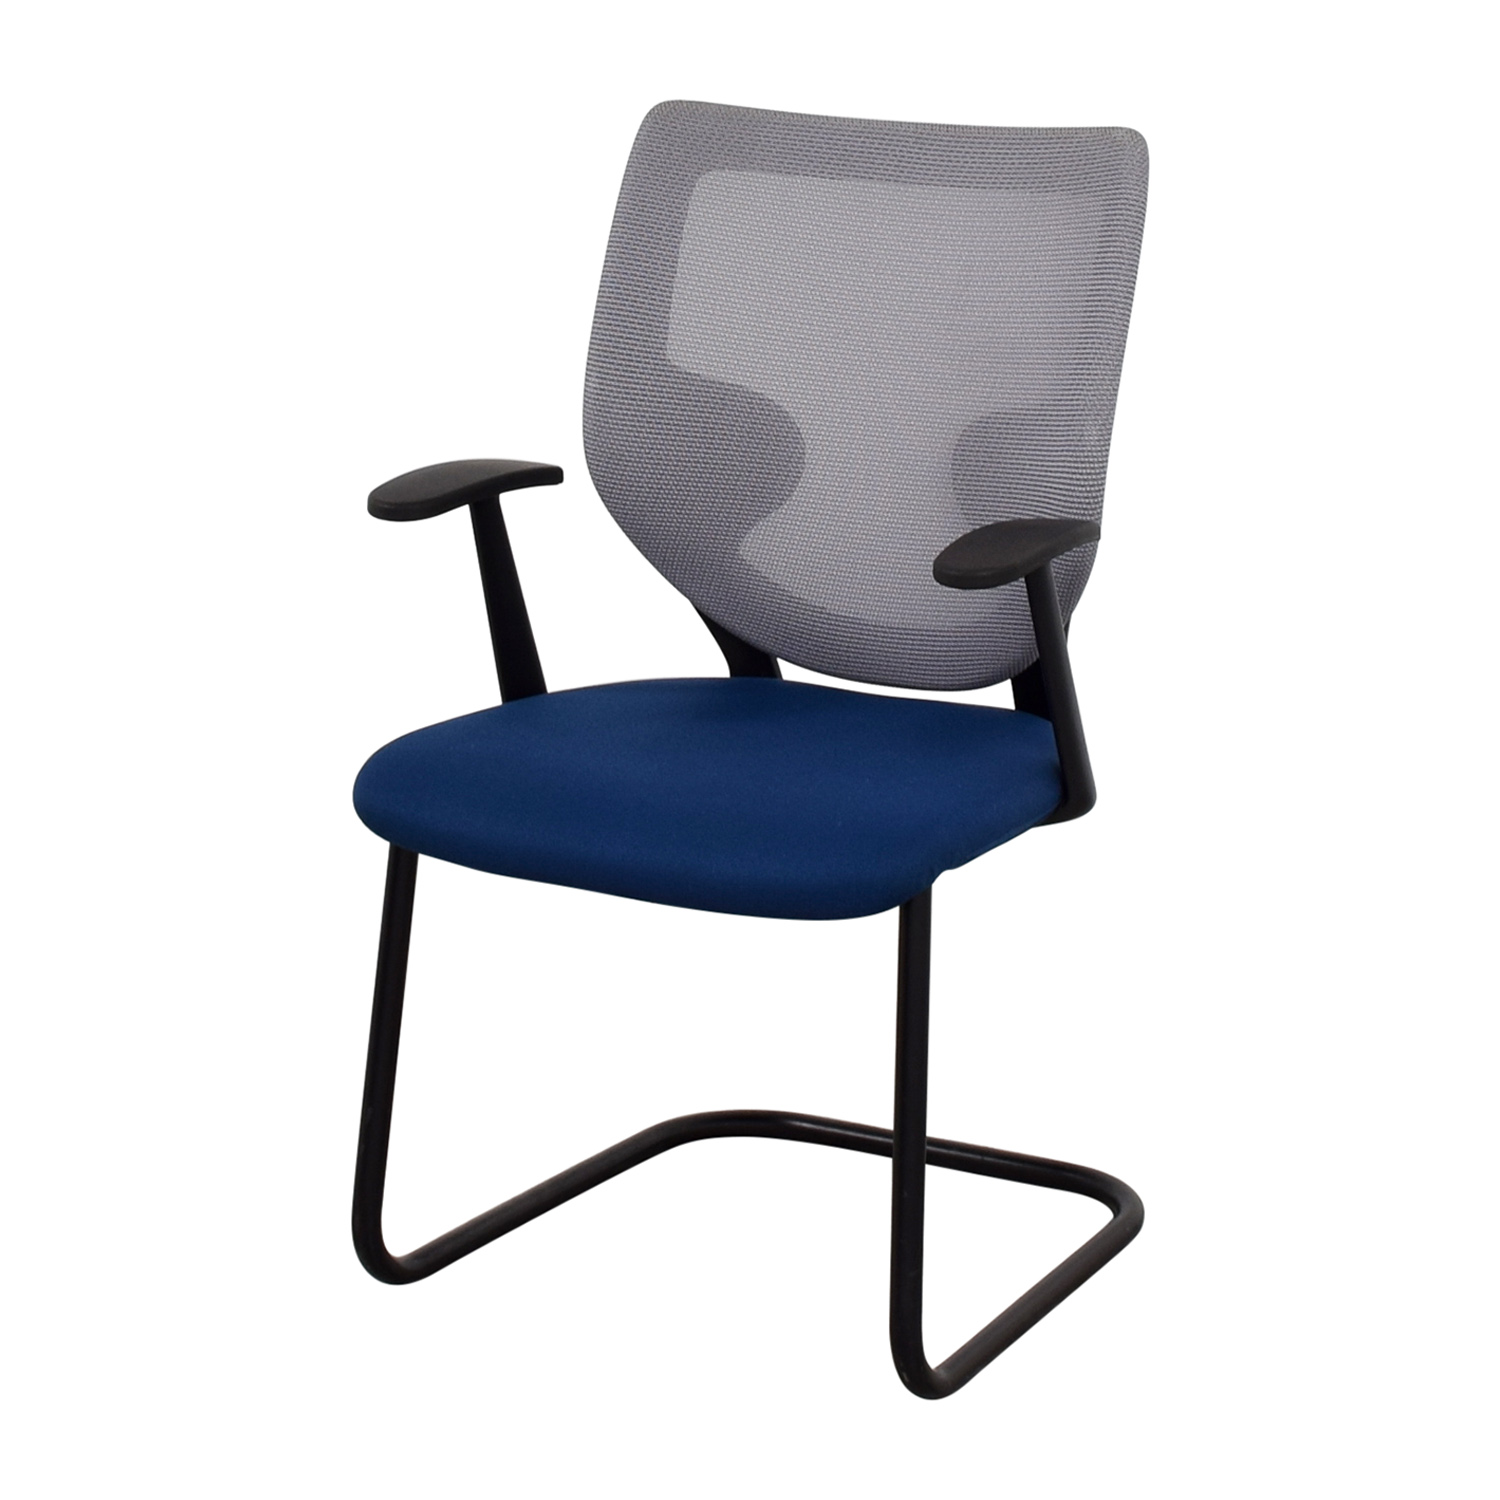 29% OFF Keilhauer Keilhauer Blue Mesh Chair Chairs